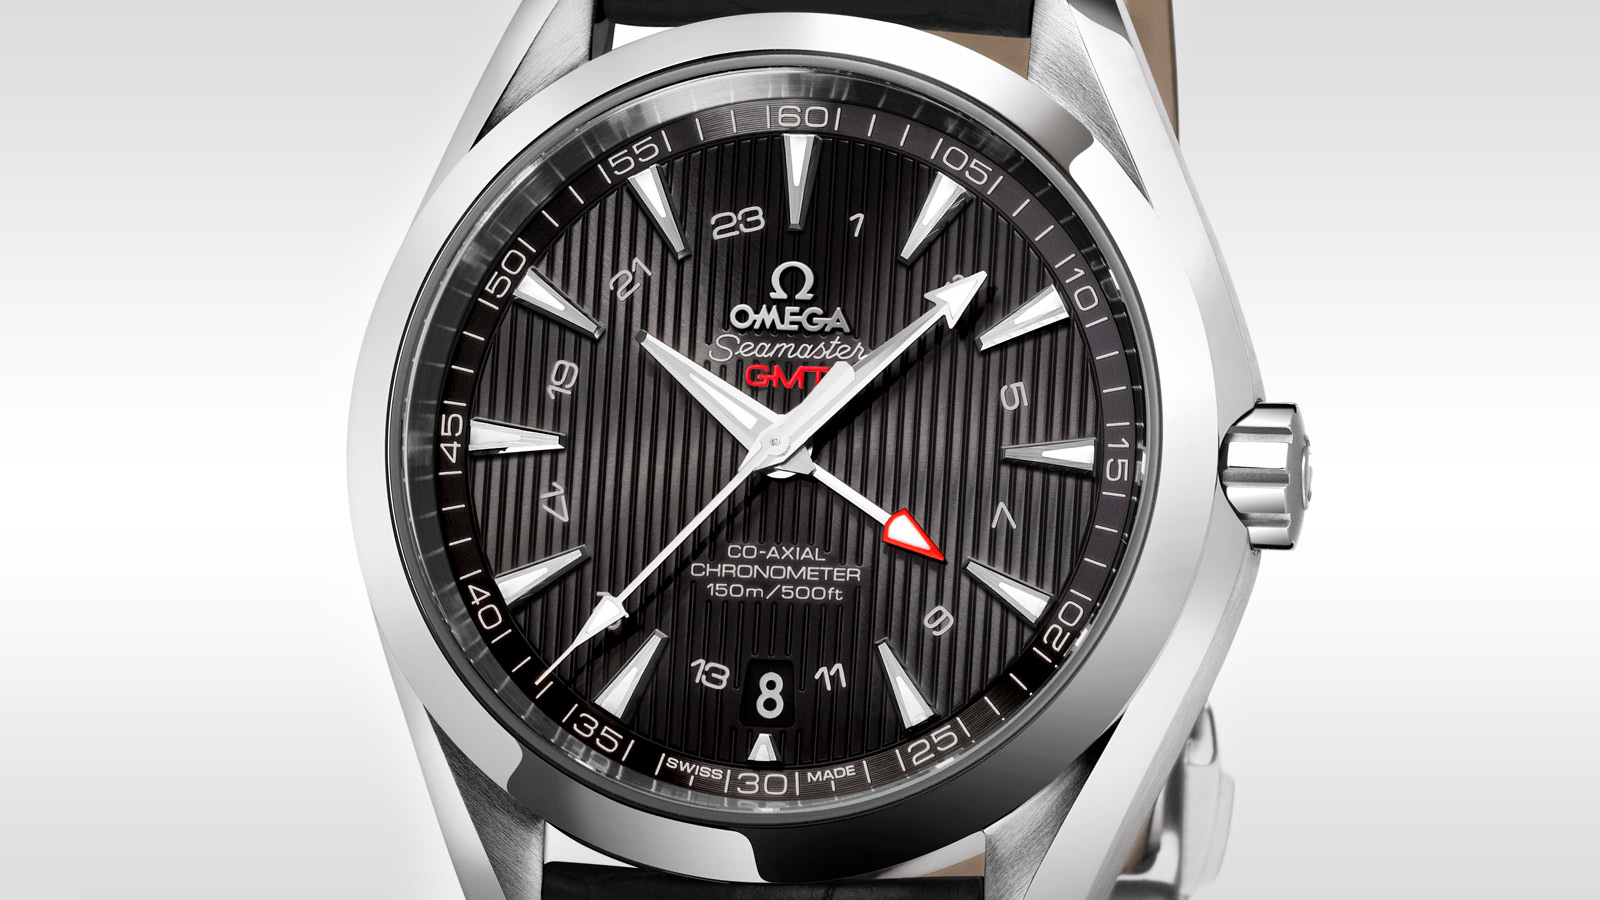 Seamaster アクアテラ 150M Aqua Terra 150M Omega Co‑Axial GMT 43 mm - 231.13.43.22.01.001 - ビュー 2